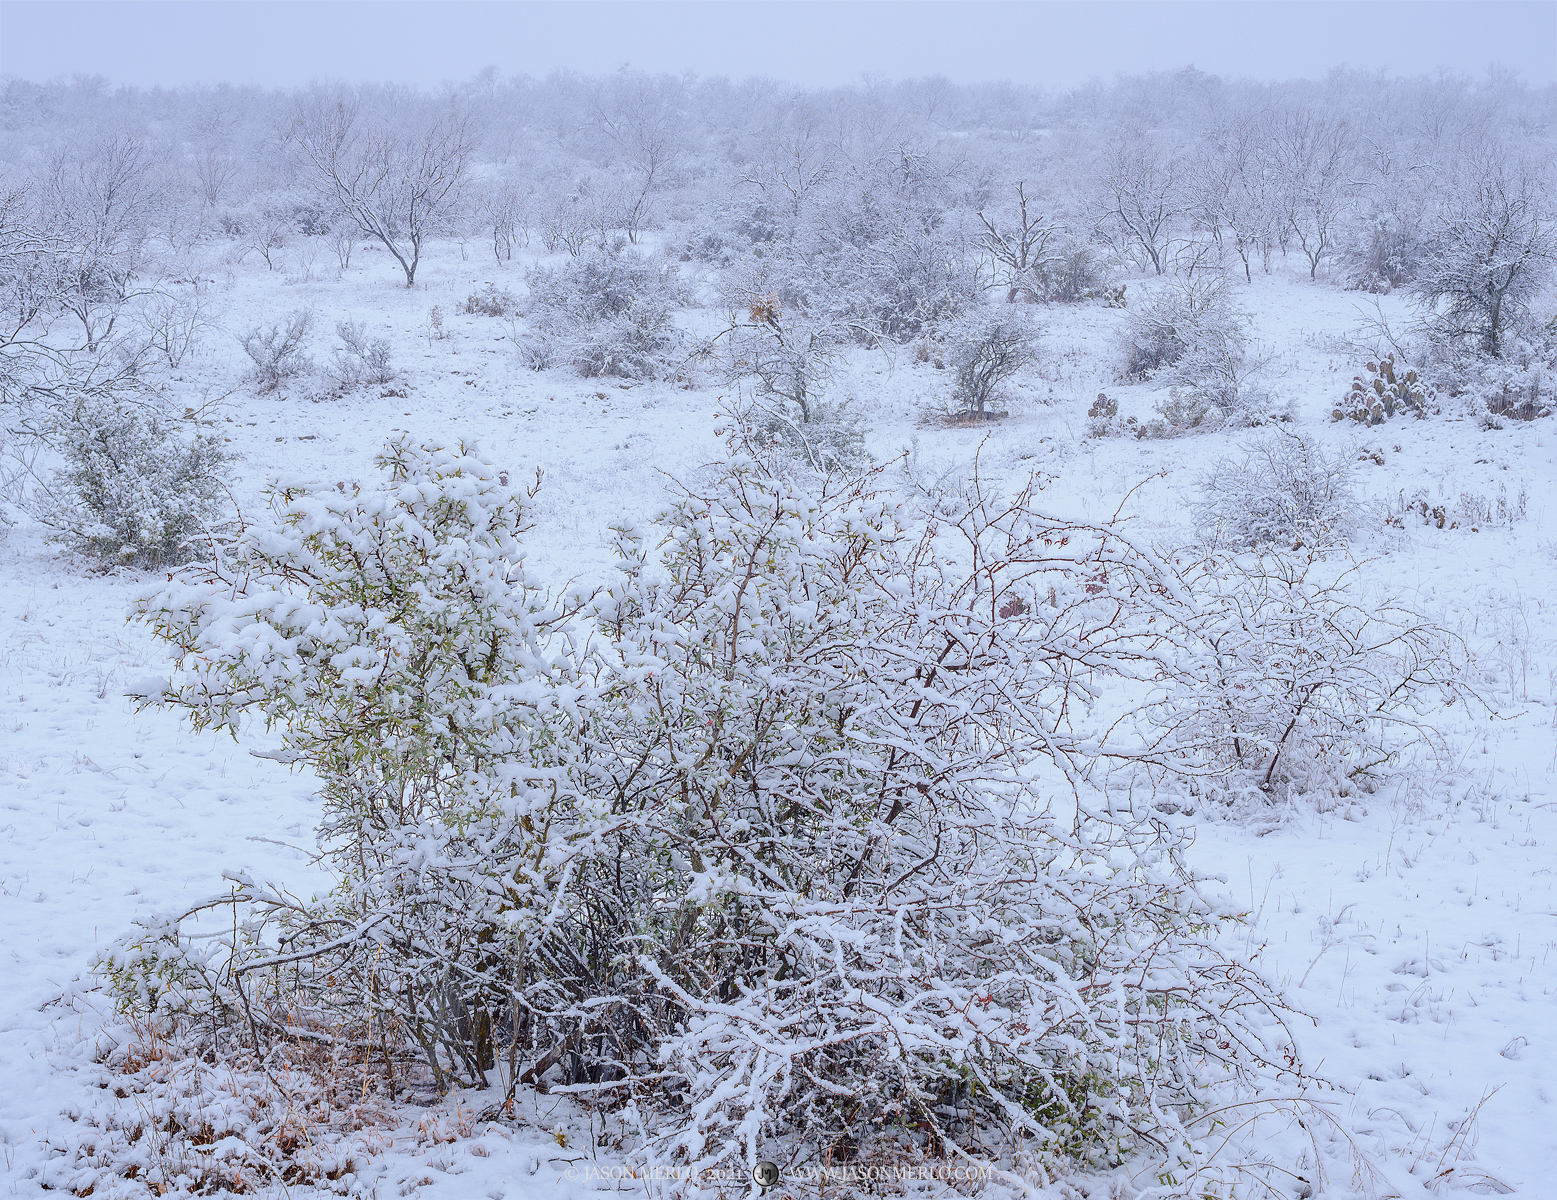 San Saba County; Texas Cross Timbers; winter; snow; blizzard; snowstorm, photo